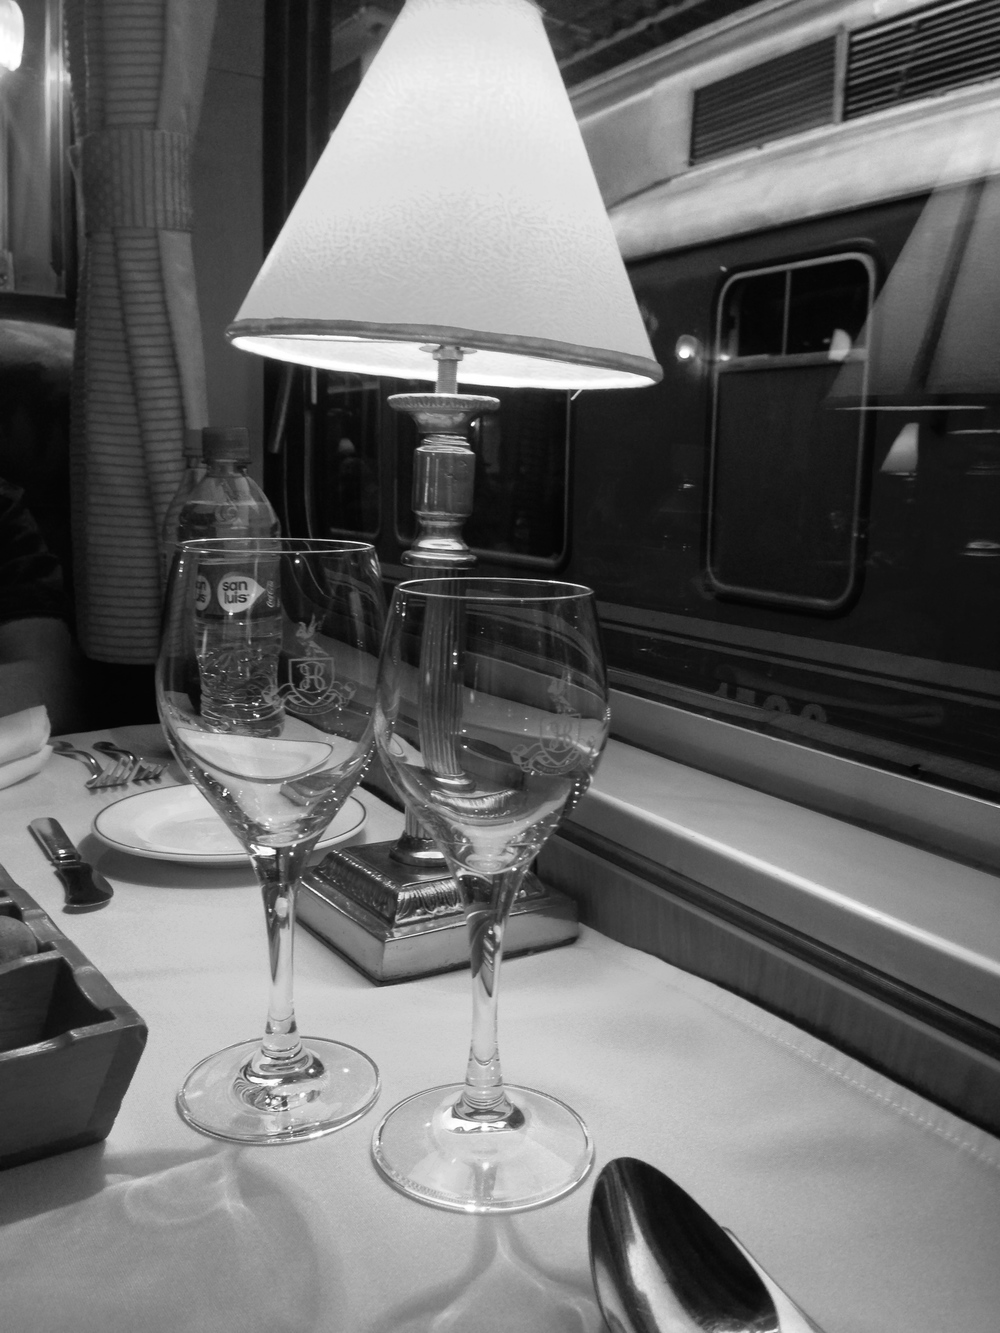 A lamp on a train? Now that's luxury!